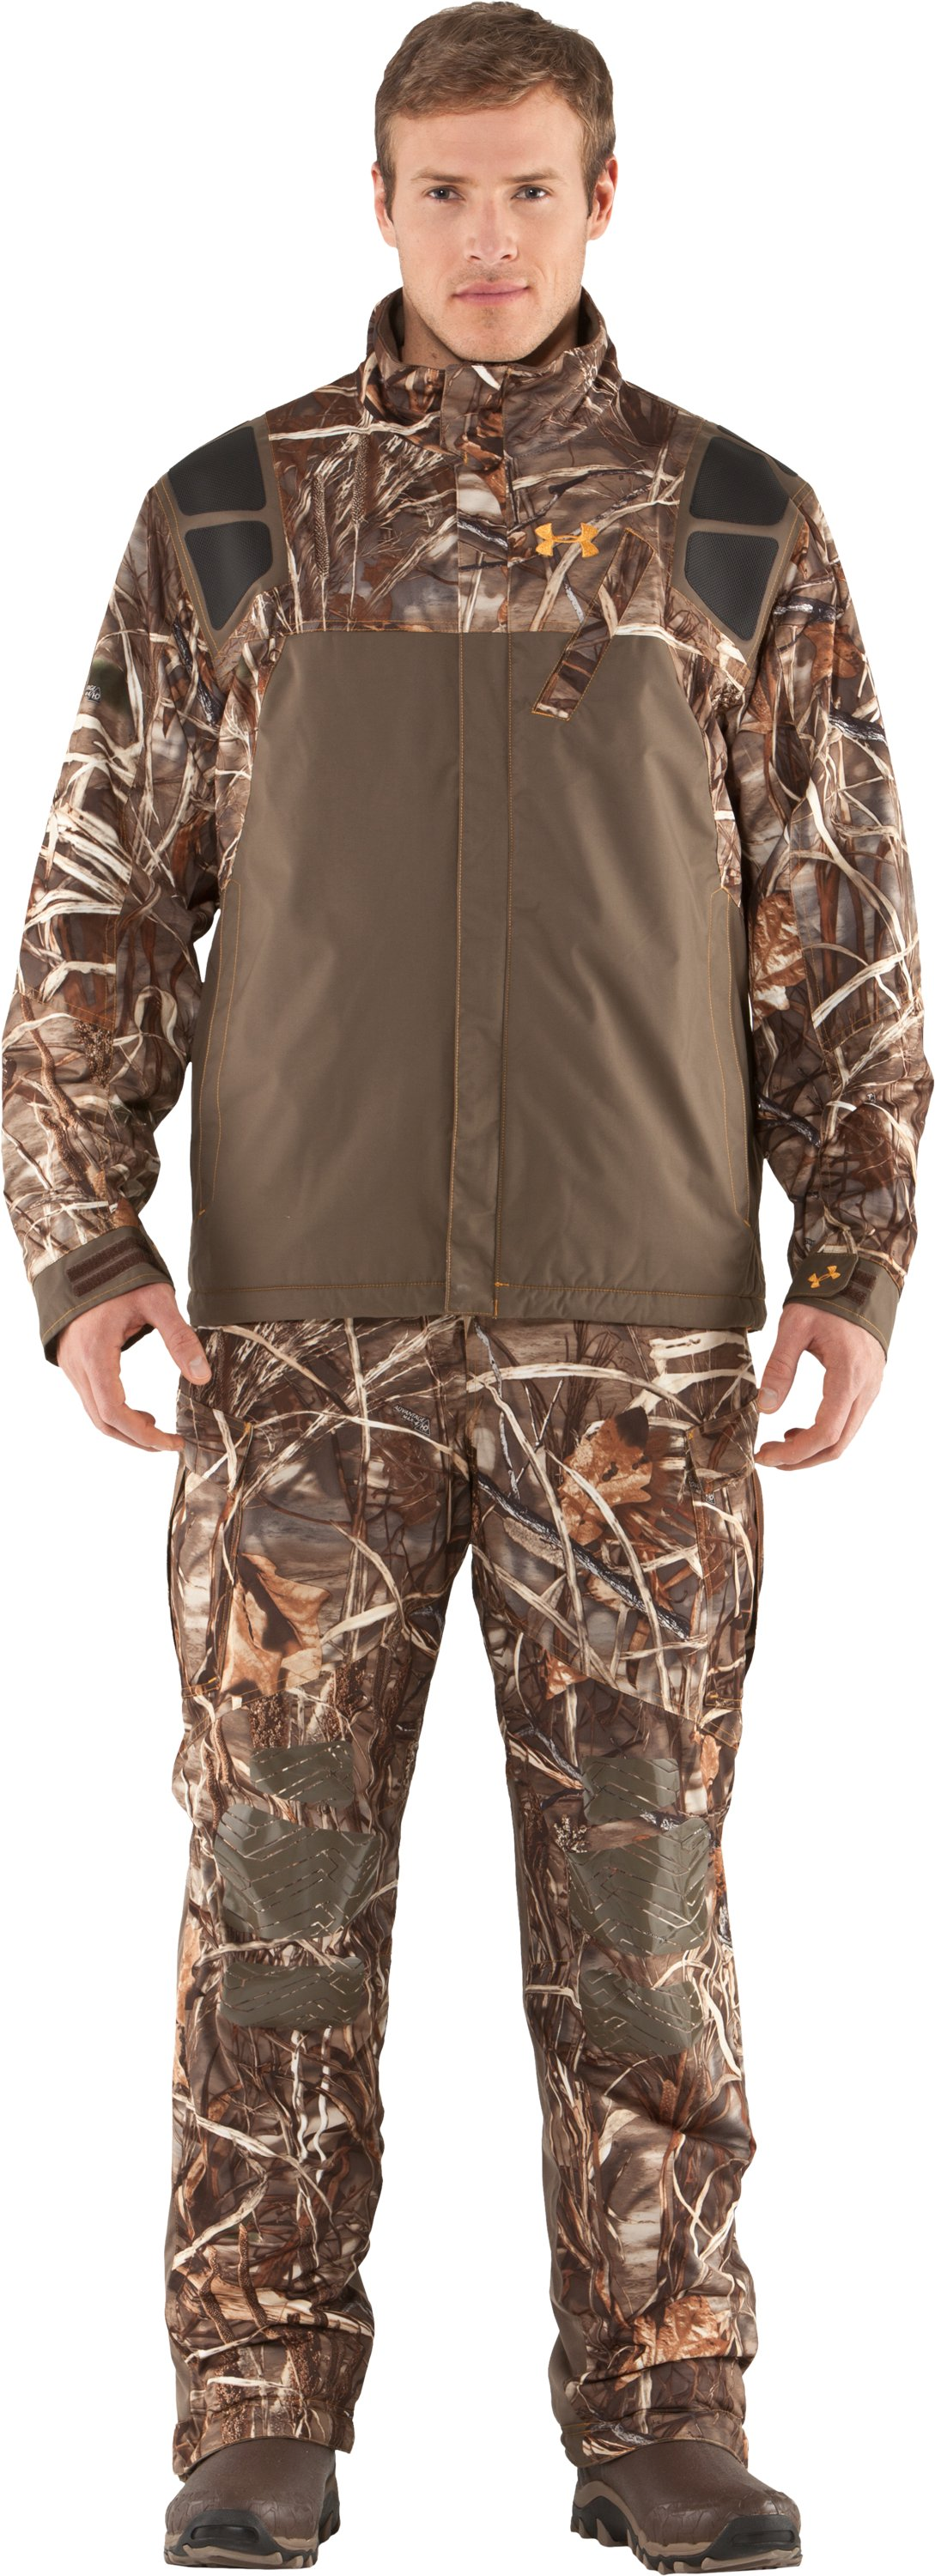 Men's Skysweeper Camo Hunting Jacket, Realtree Max, Front